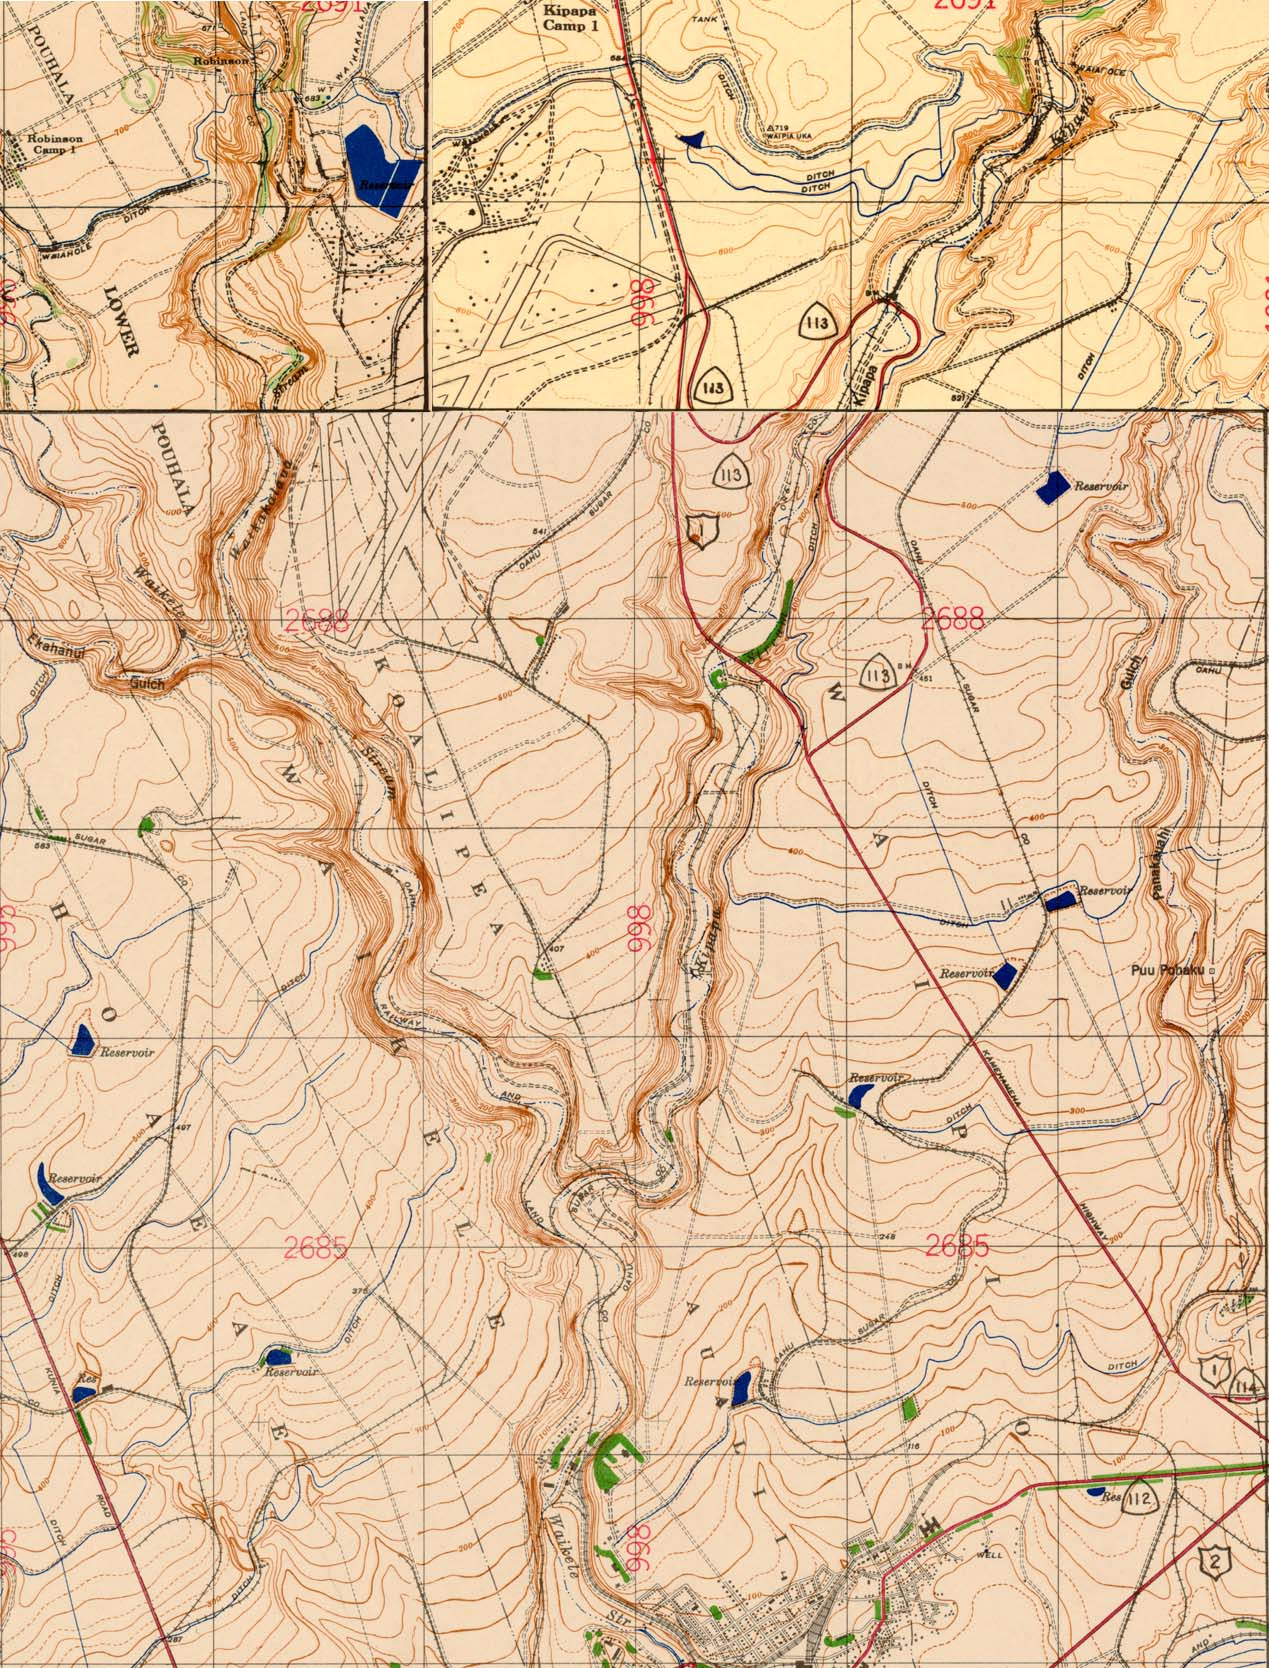 Detail of 1943 topographic map